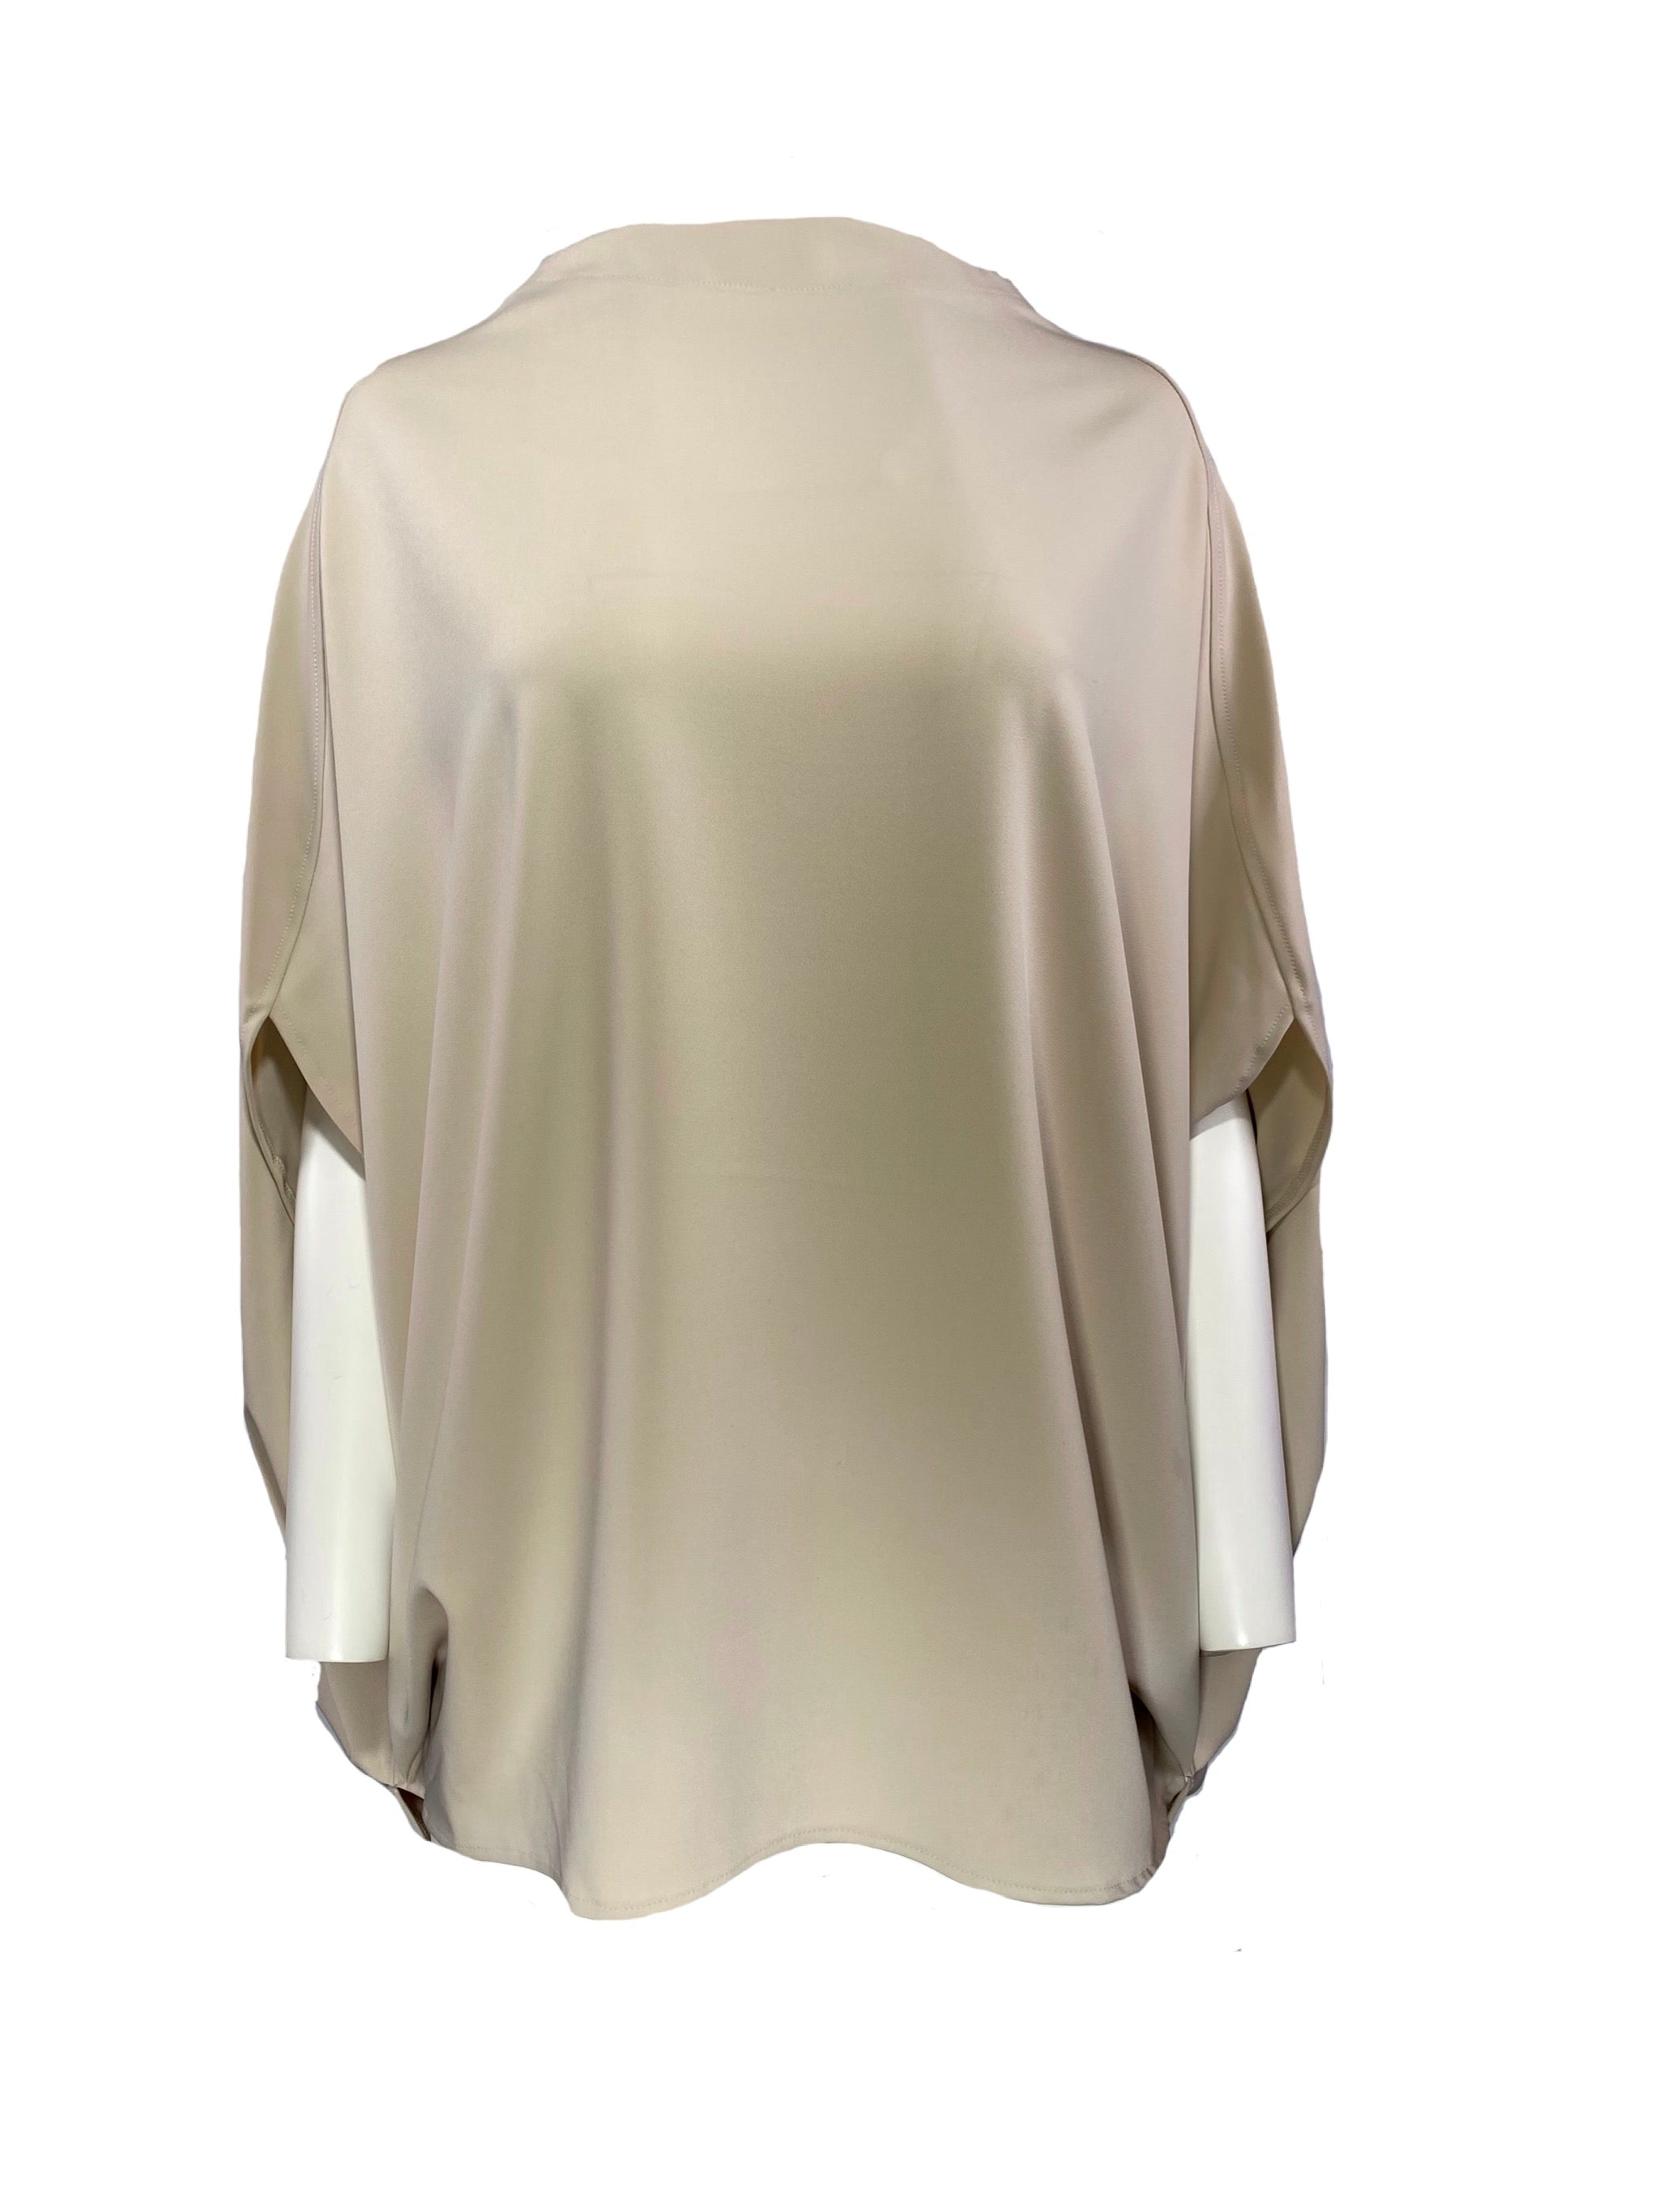 LUNA TOP / STRETCH CA - C3 (4694583836751)